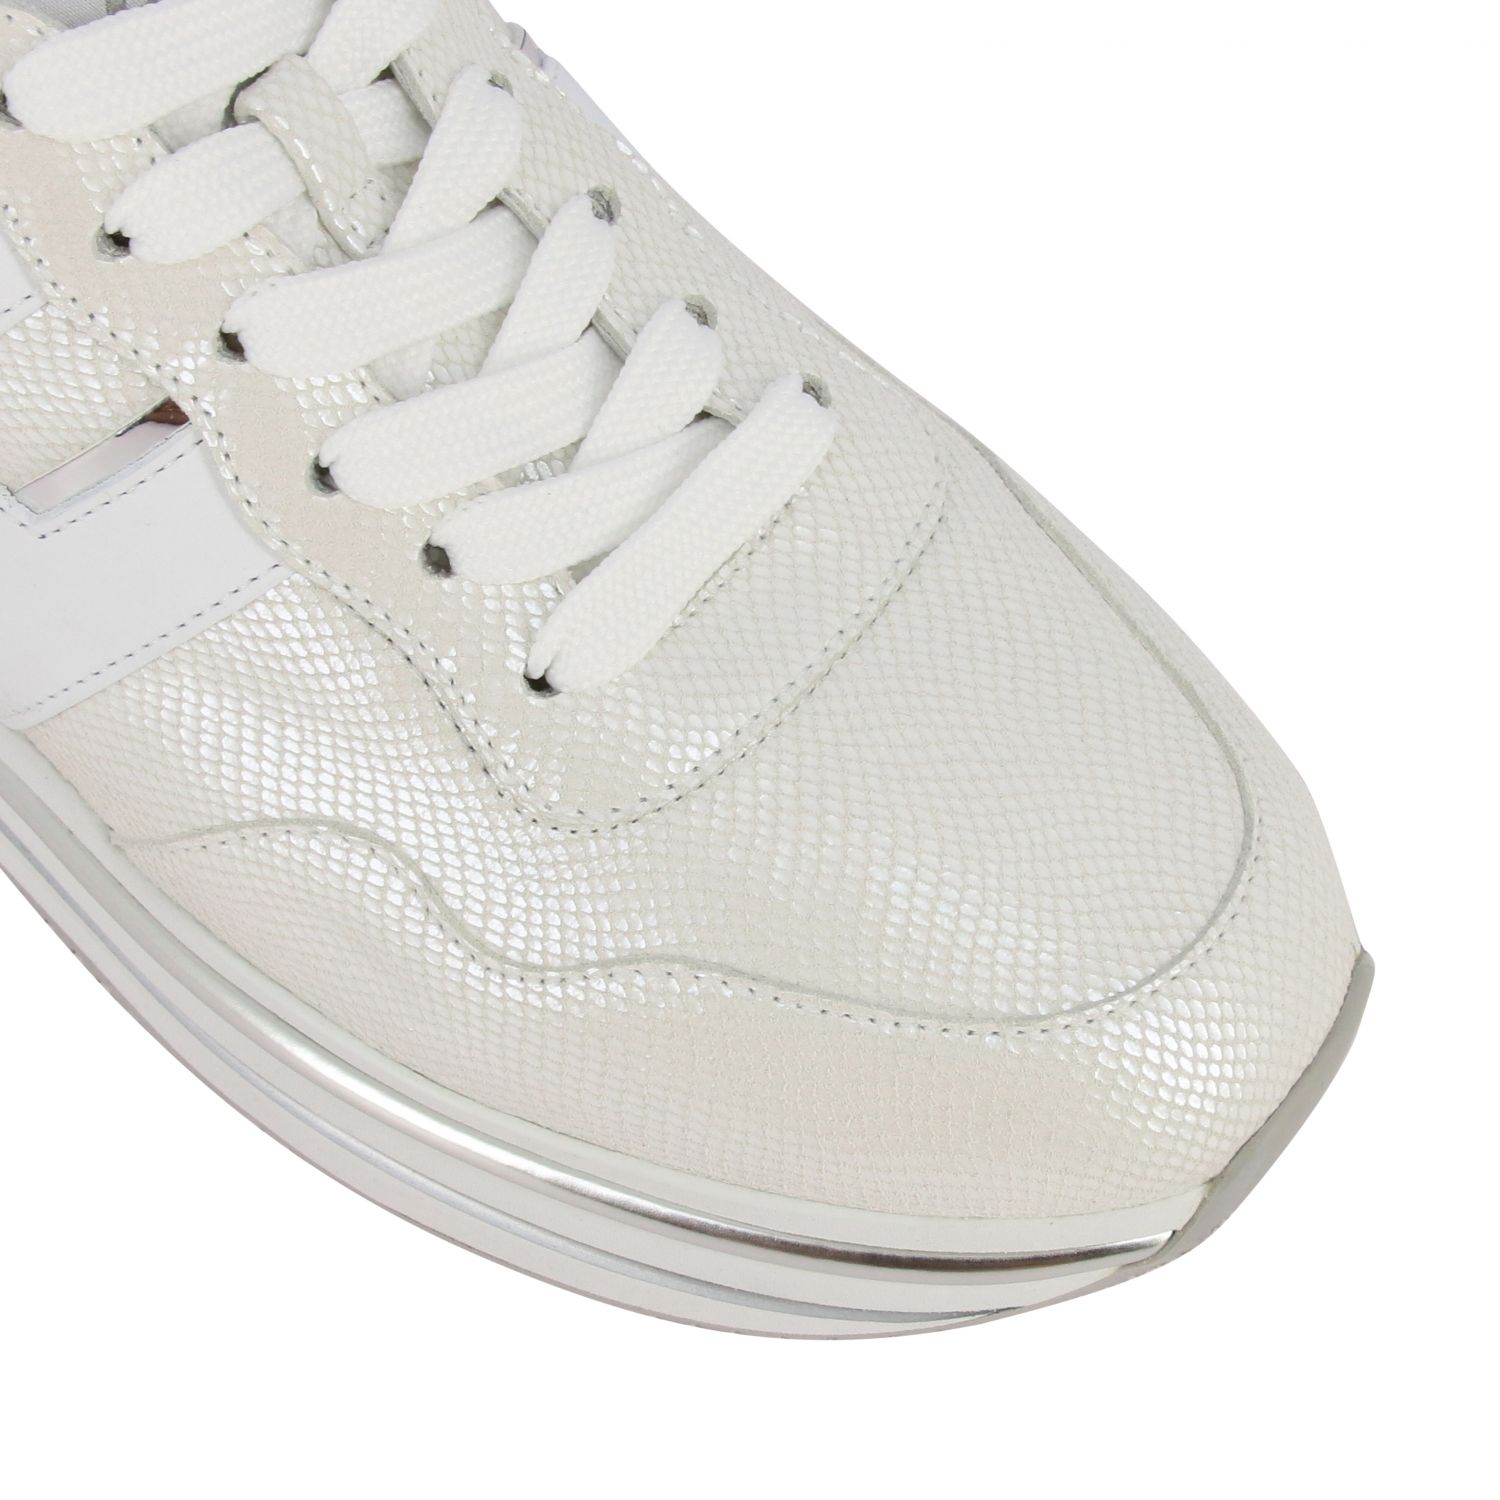 Hogan 468 midi platform sneakers in leather with big H and glitter piping white 4